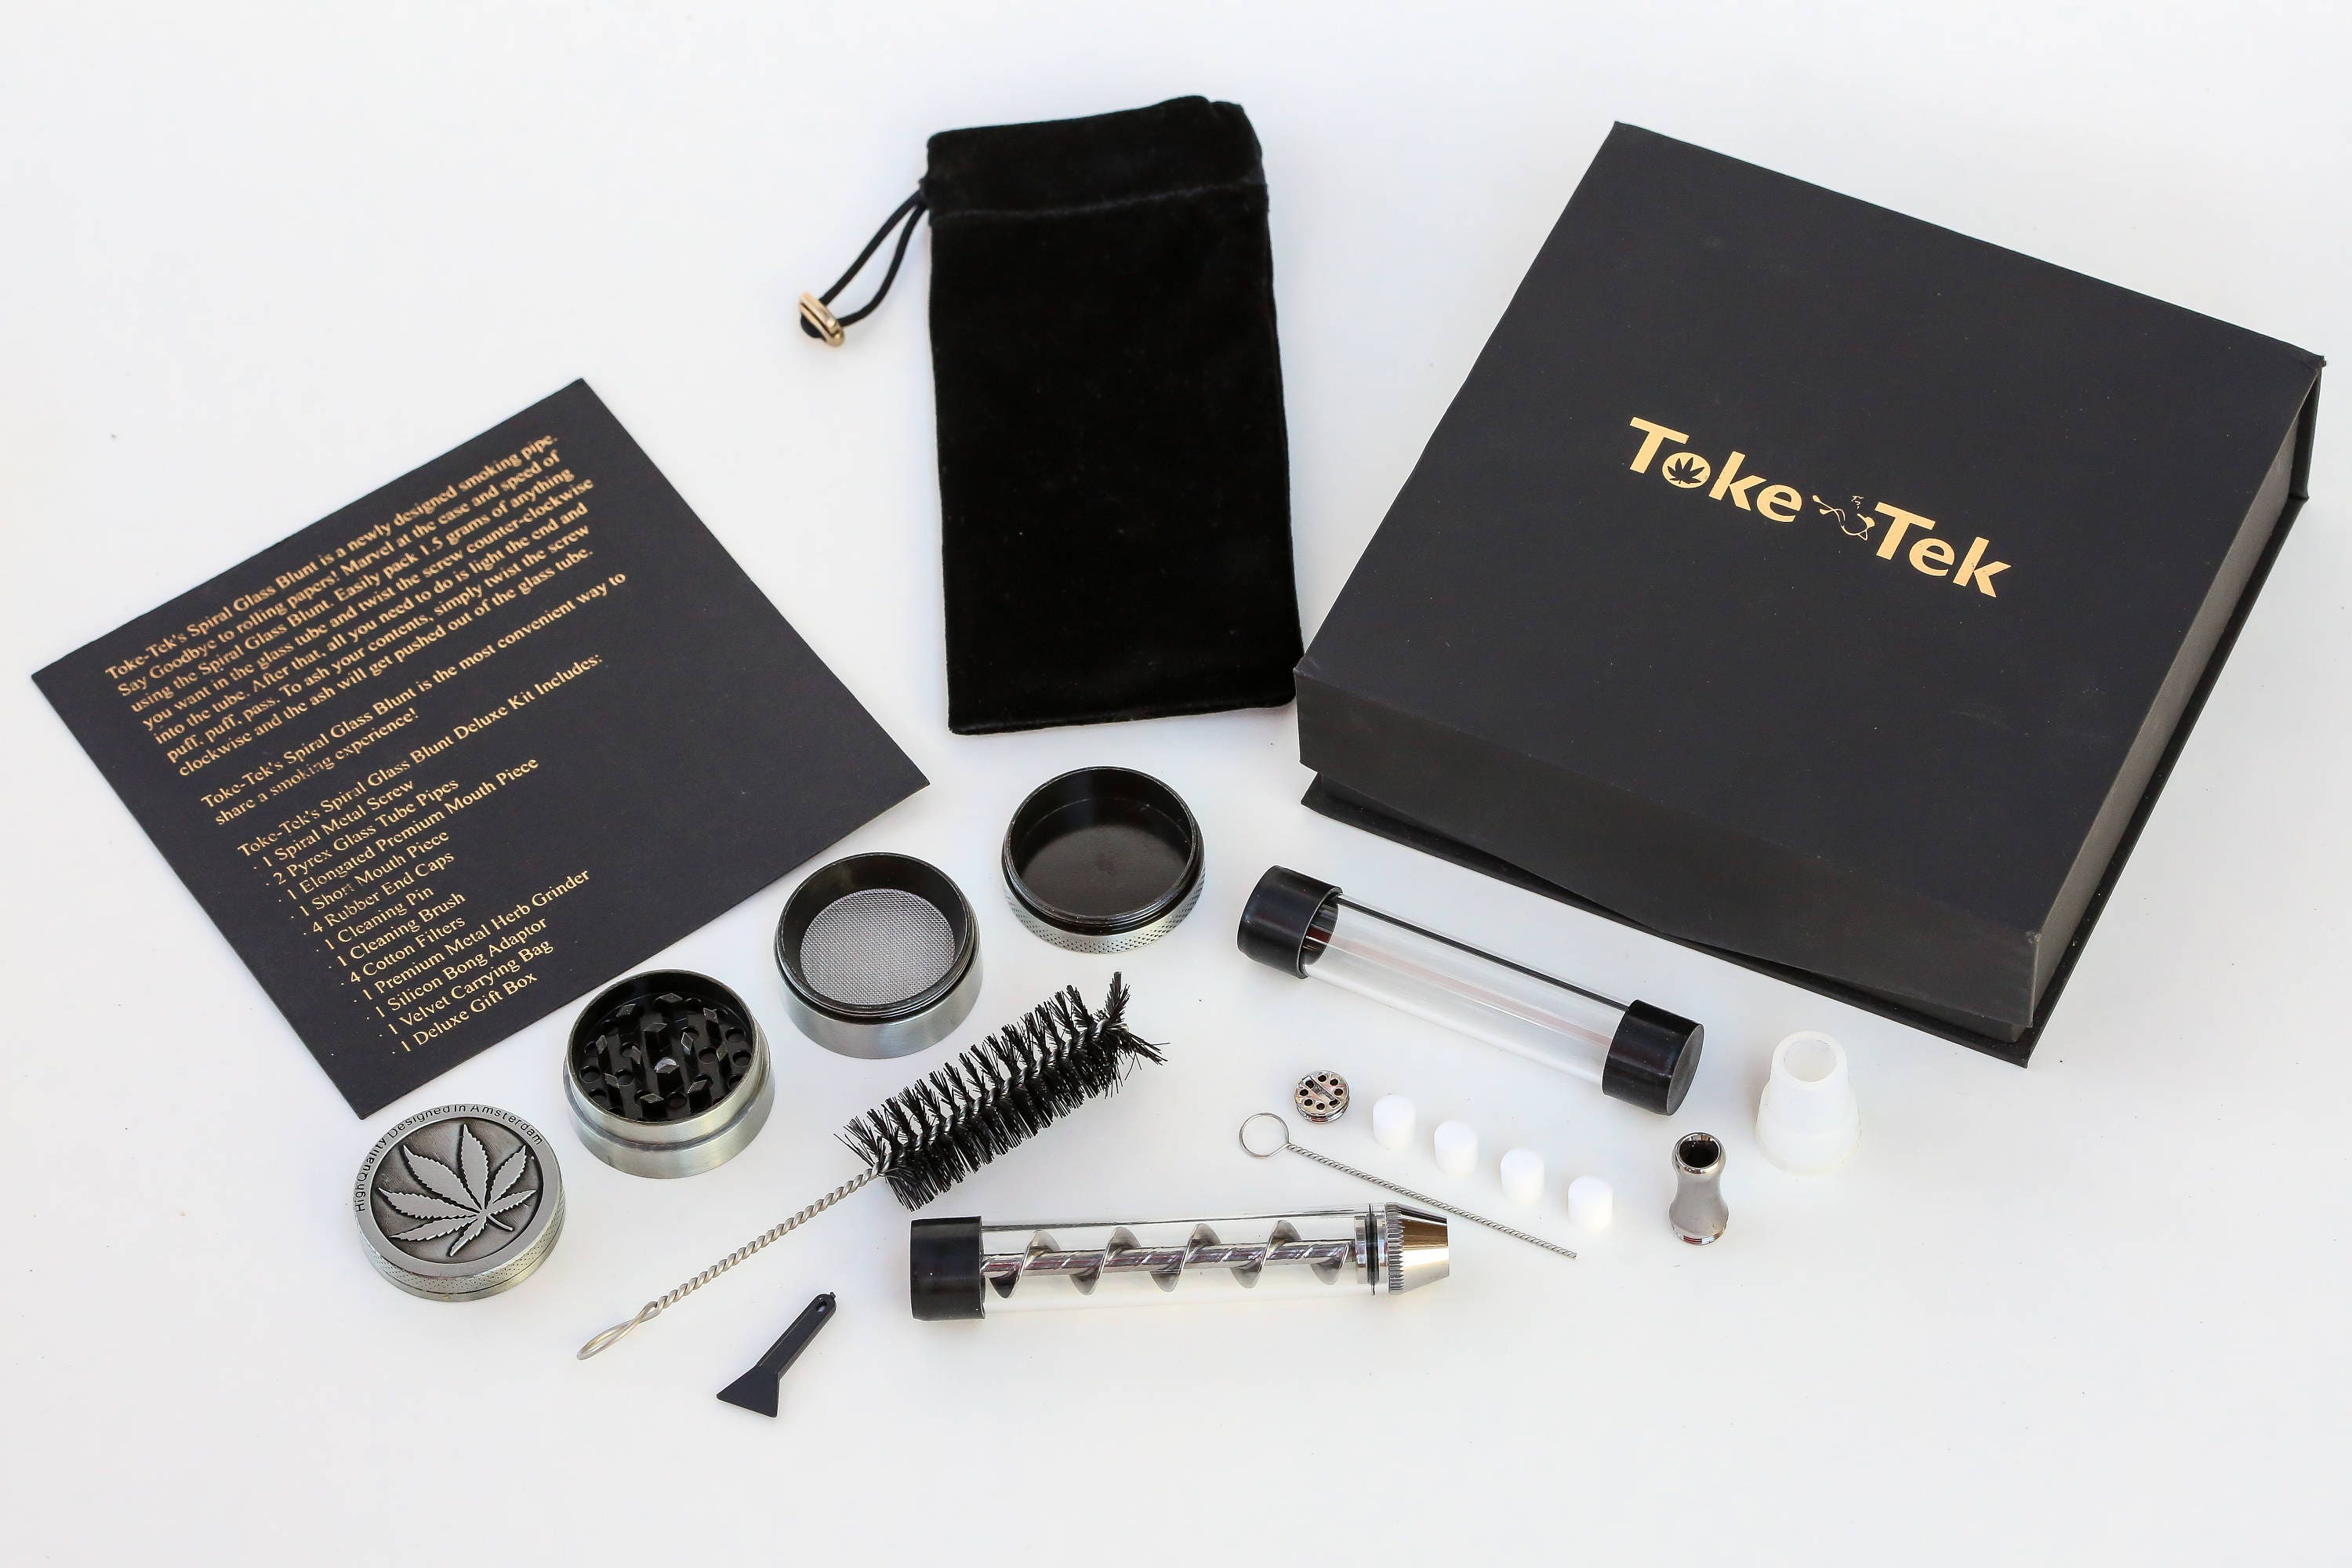 Twisty Glass Blunt Deluxe Combo Kit  Includes Herb Grinder, Spare Tubes,  Filtered Mouthpiece, Carrying Case, and Gift Box  Highest Quality